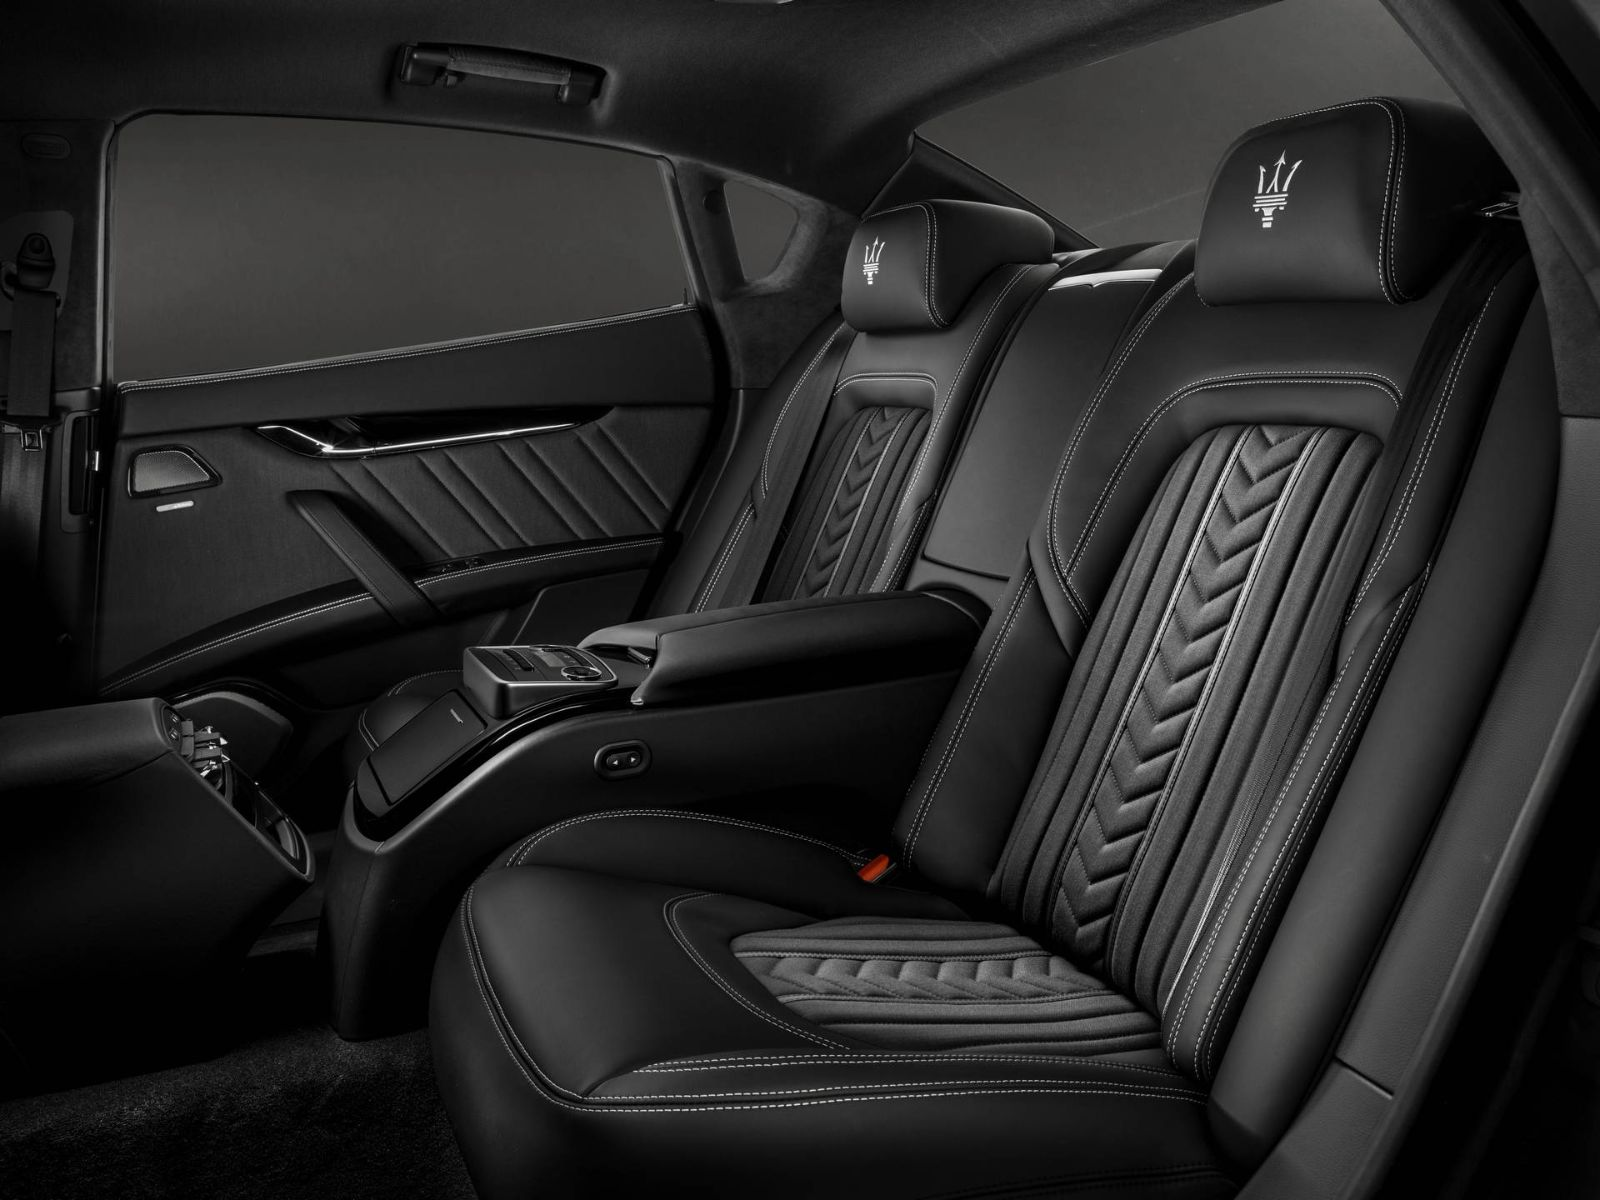 Rear seats design in black leather by Ermenegildo Zegna - Maserati Quattroporte GranLusso